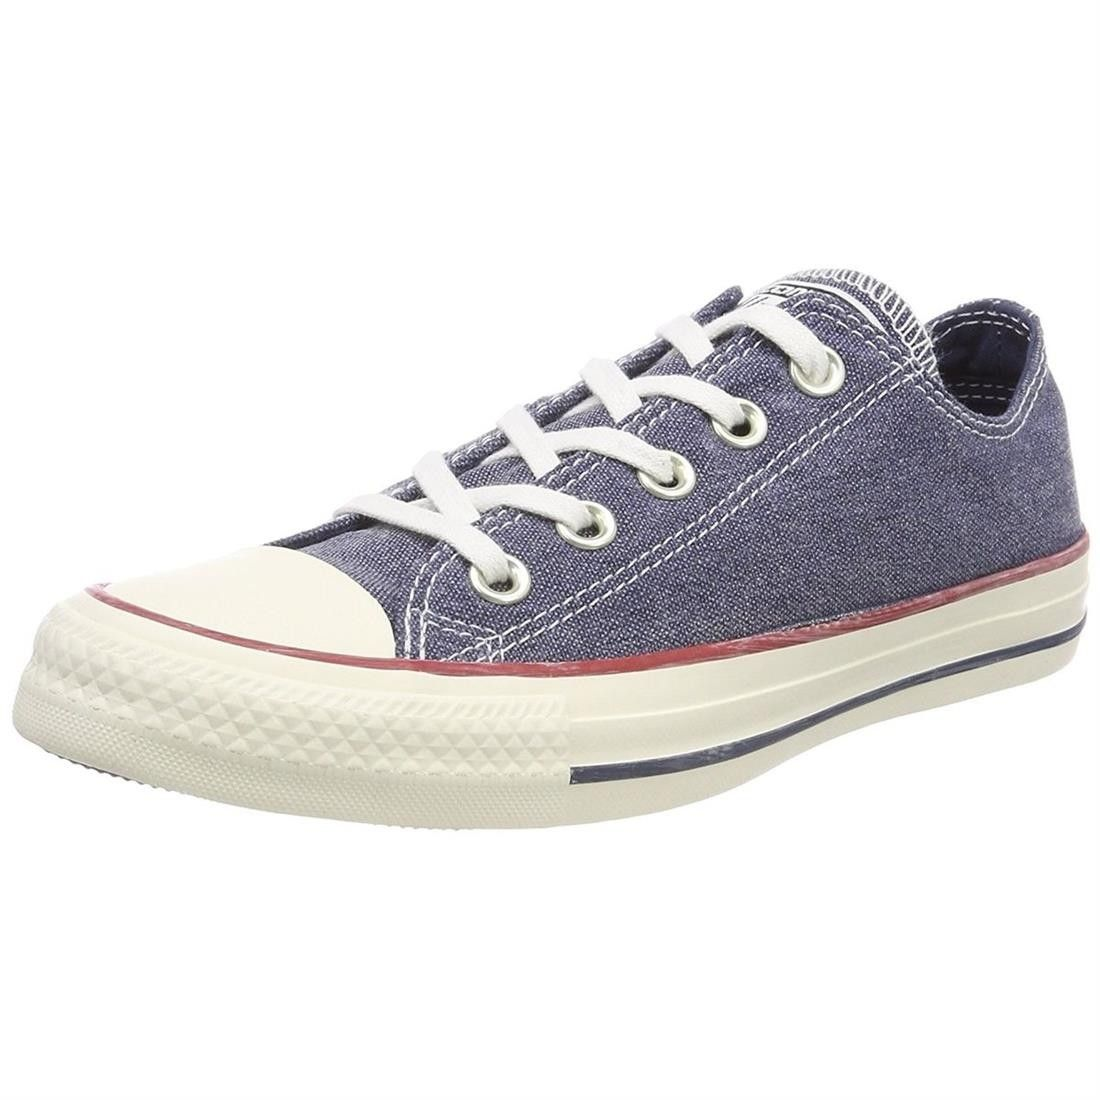 new arrivals 59afd ad9b8 Baskets mixte adultes converse all star ox f